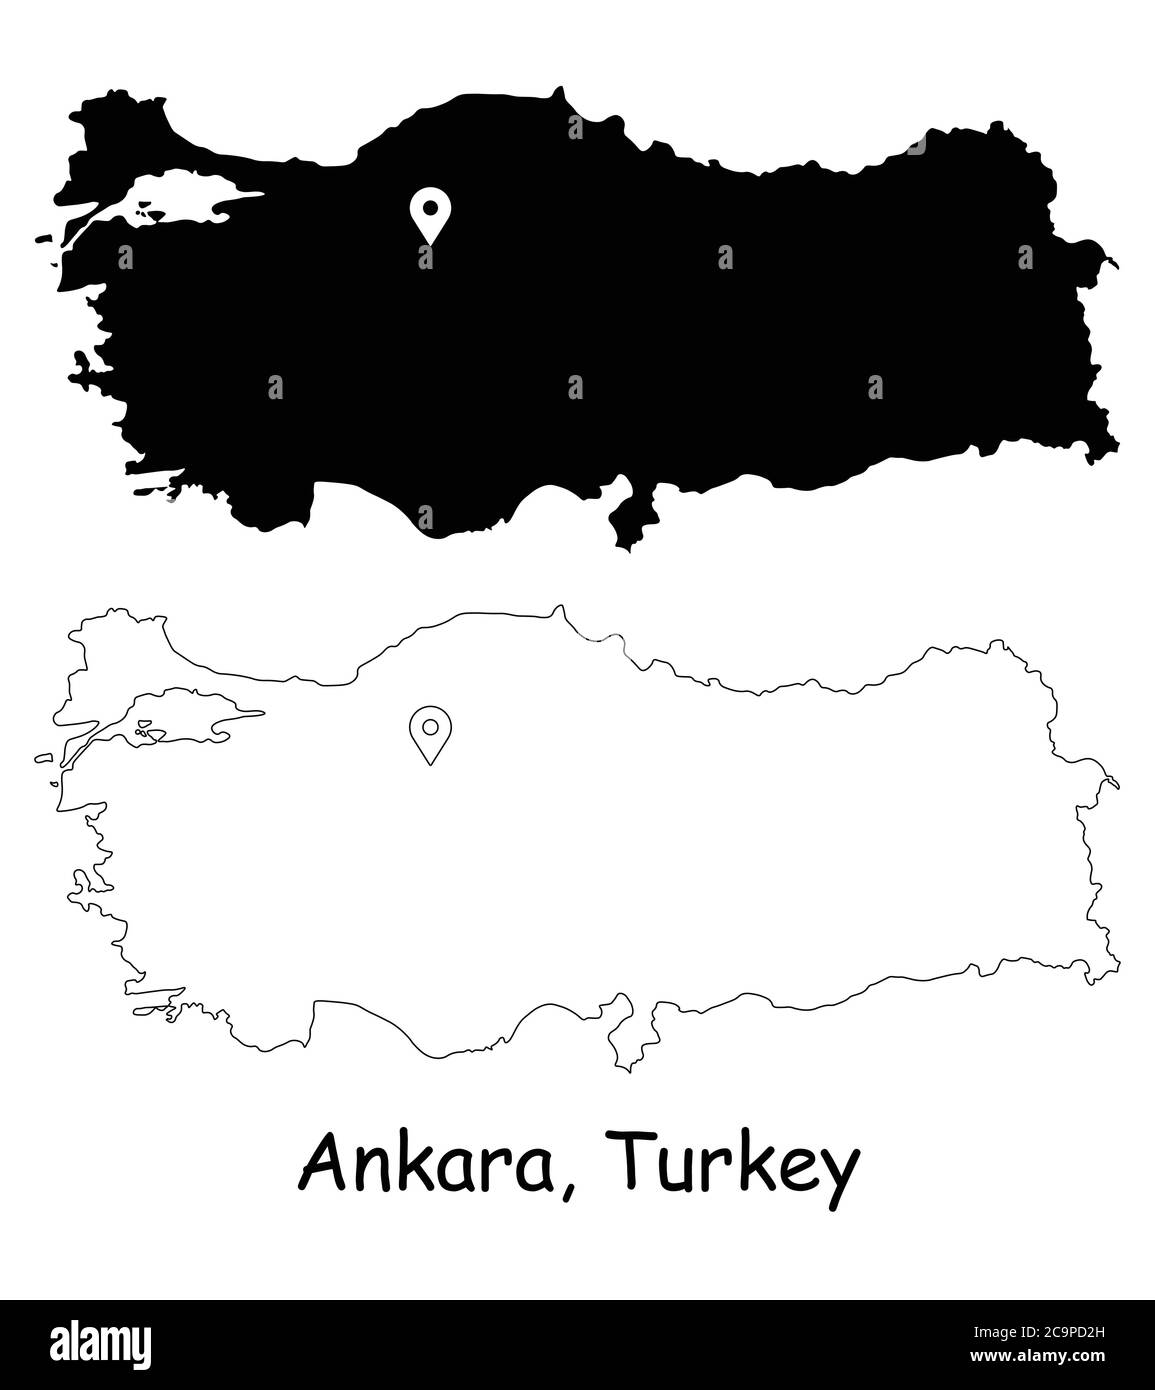 Ankara, Turkey. Detailed Country Map with Location Pin on Capital City. Black silhouette and outline maps isolated on white background. EPS Vector Stock Vector